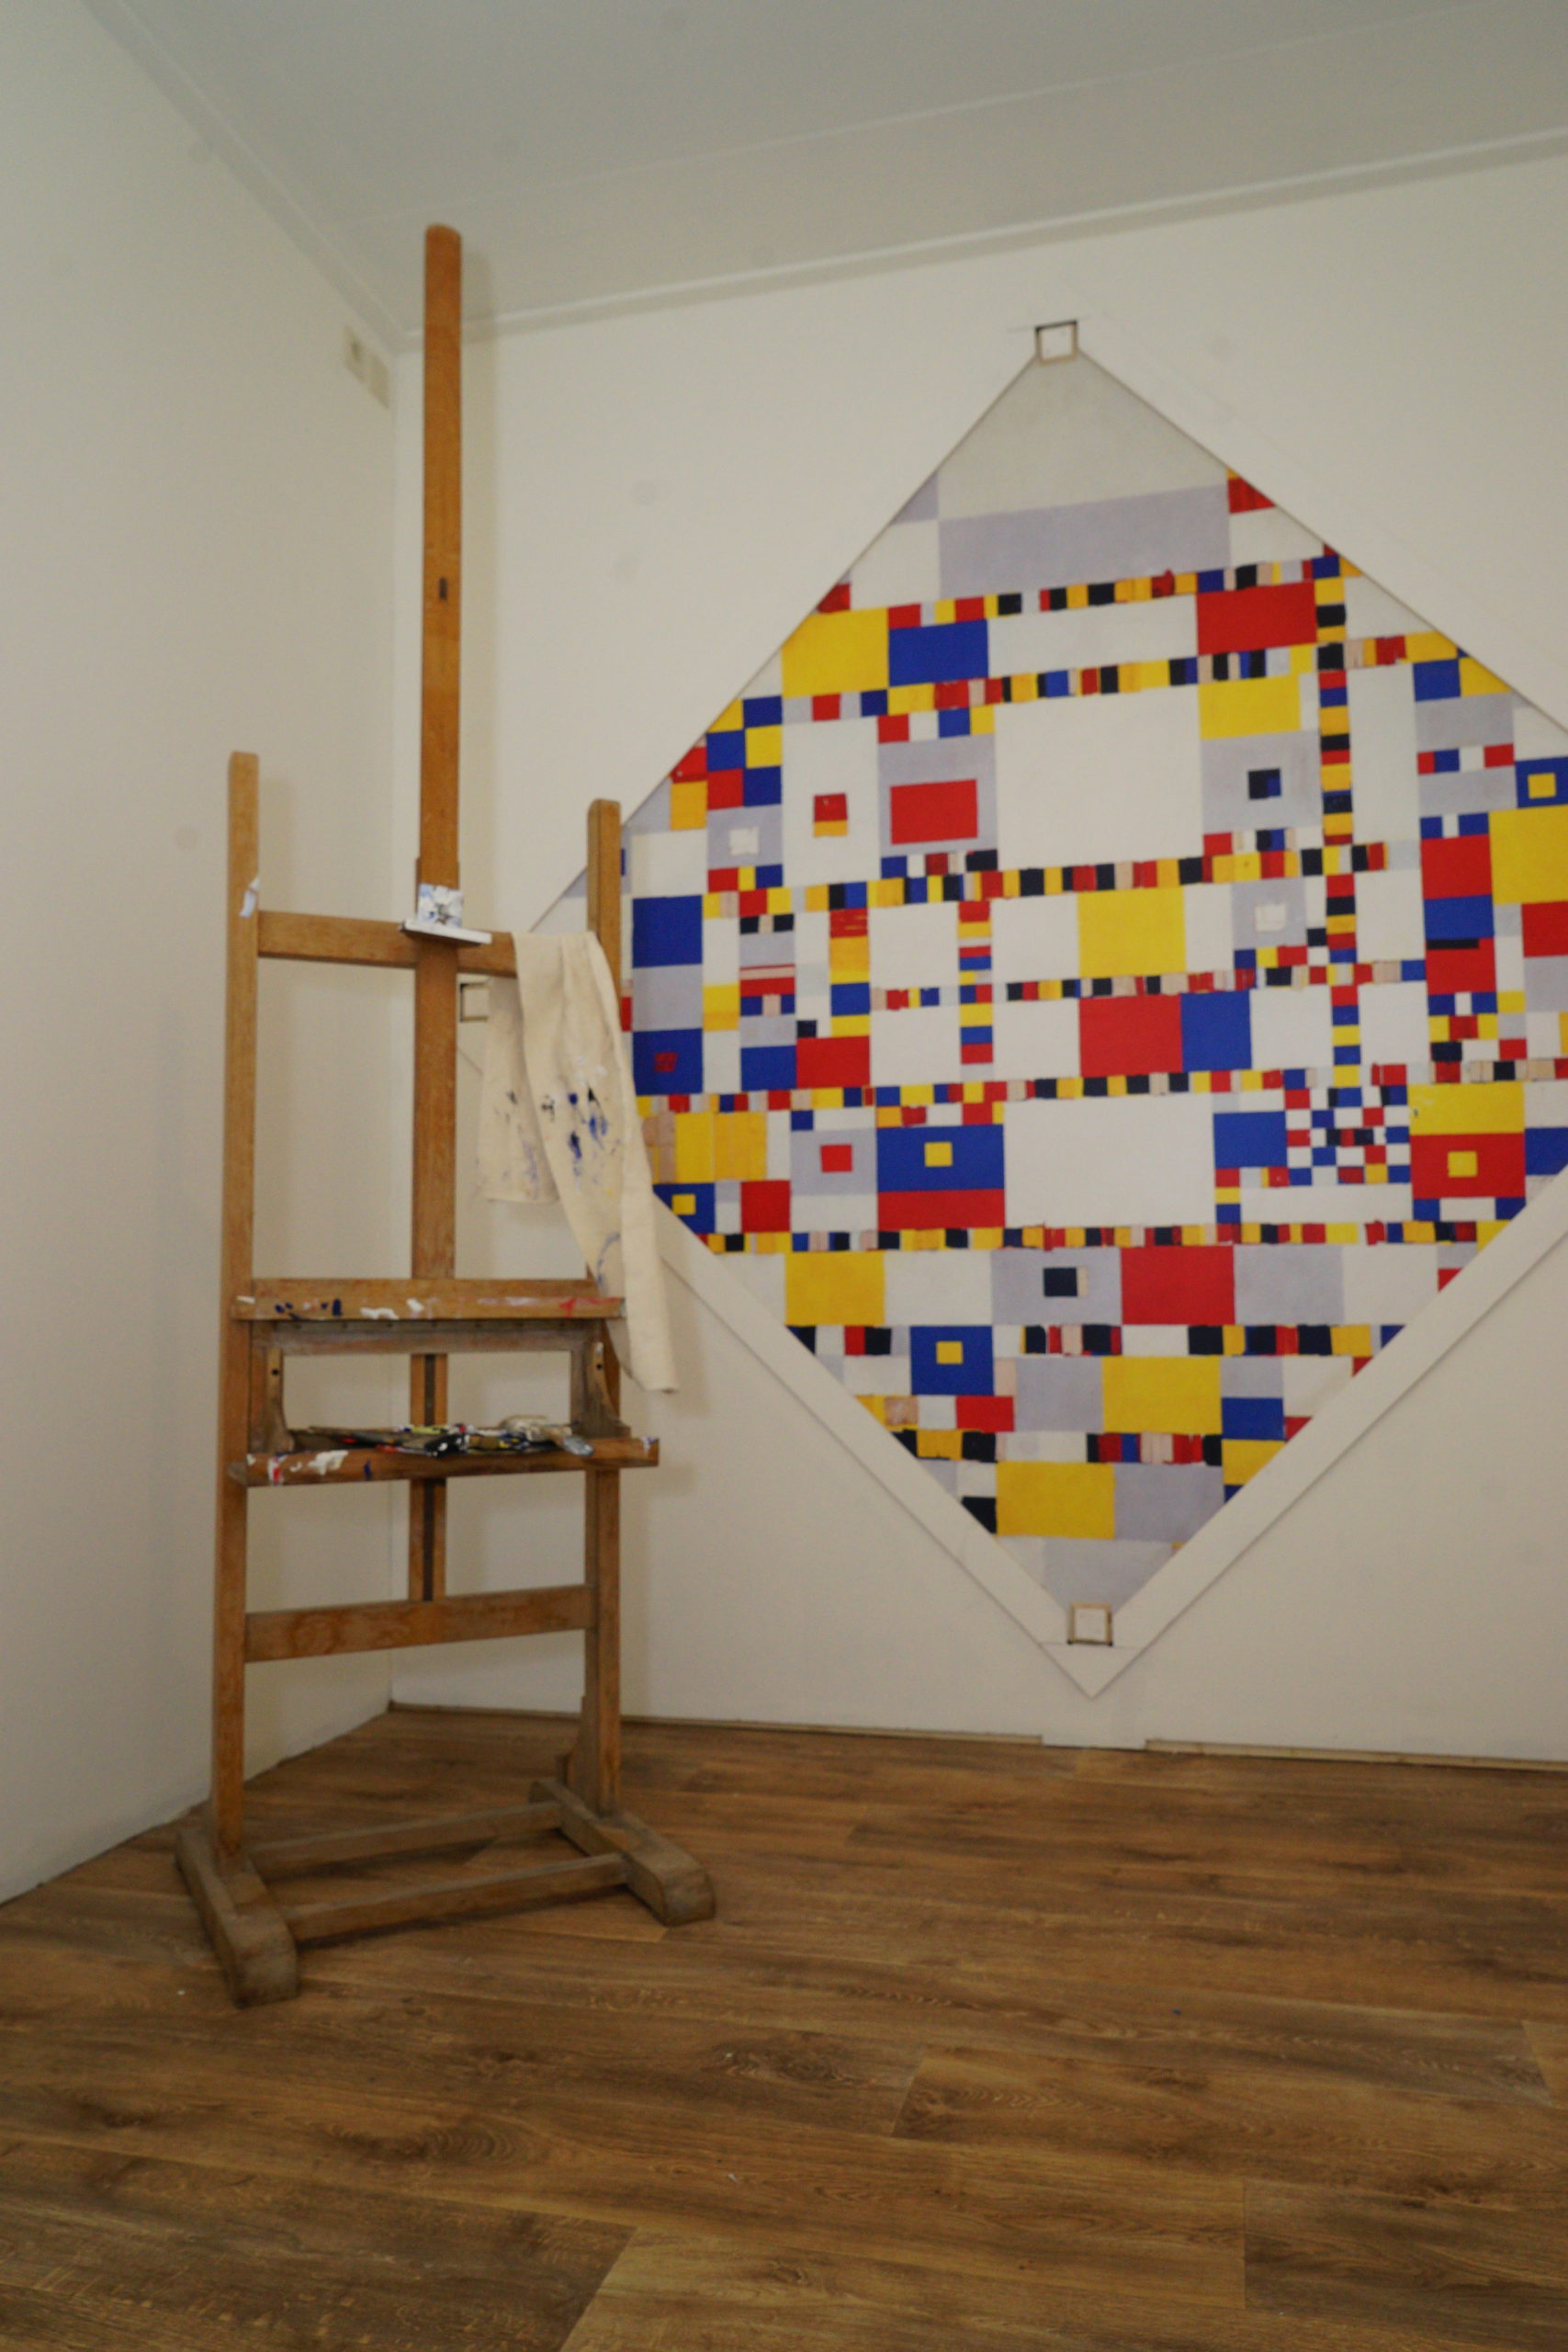 Escape Room: The Secret of Mondriaan